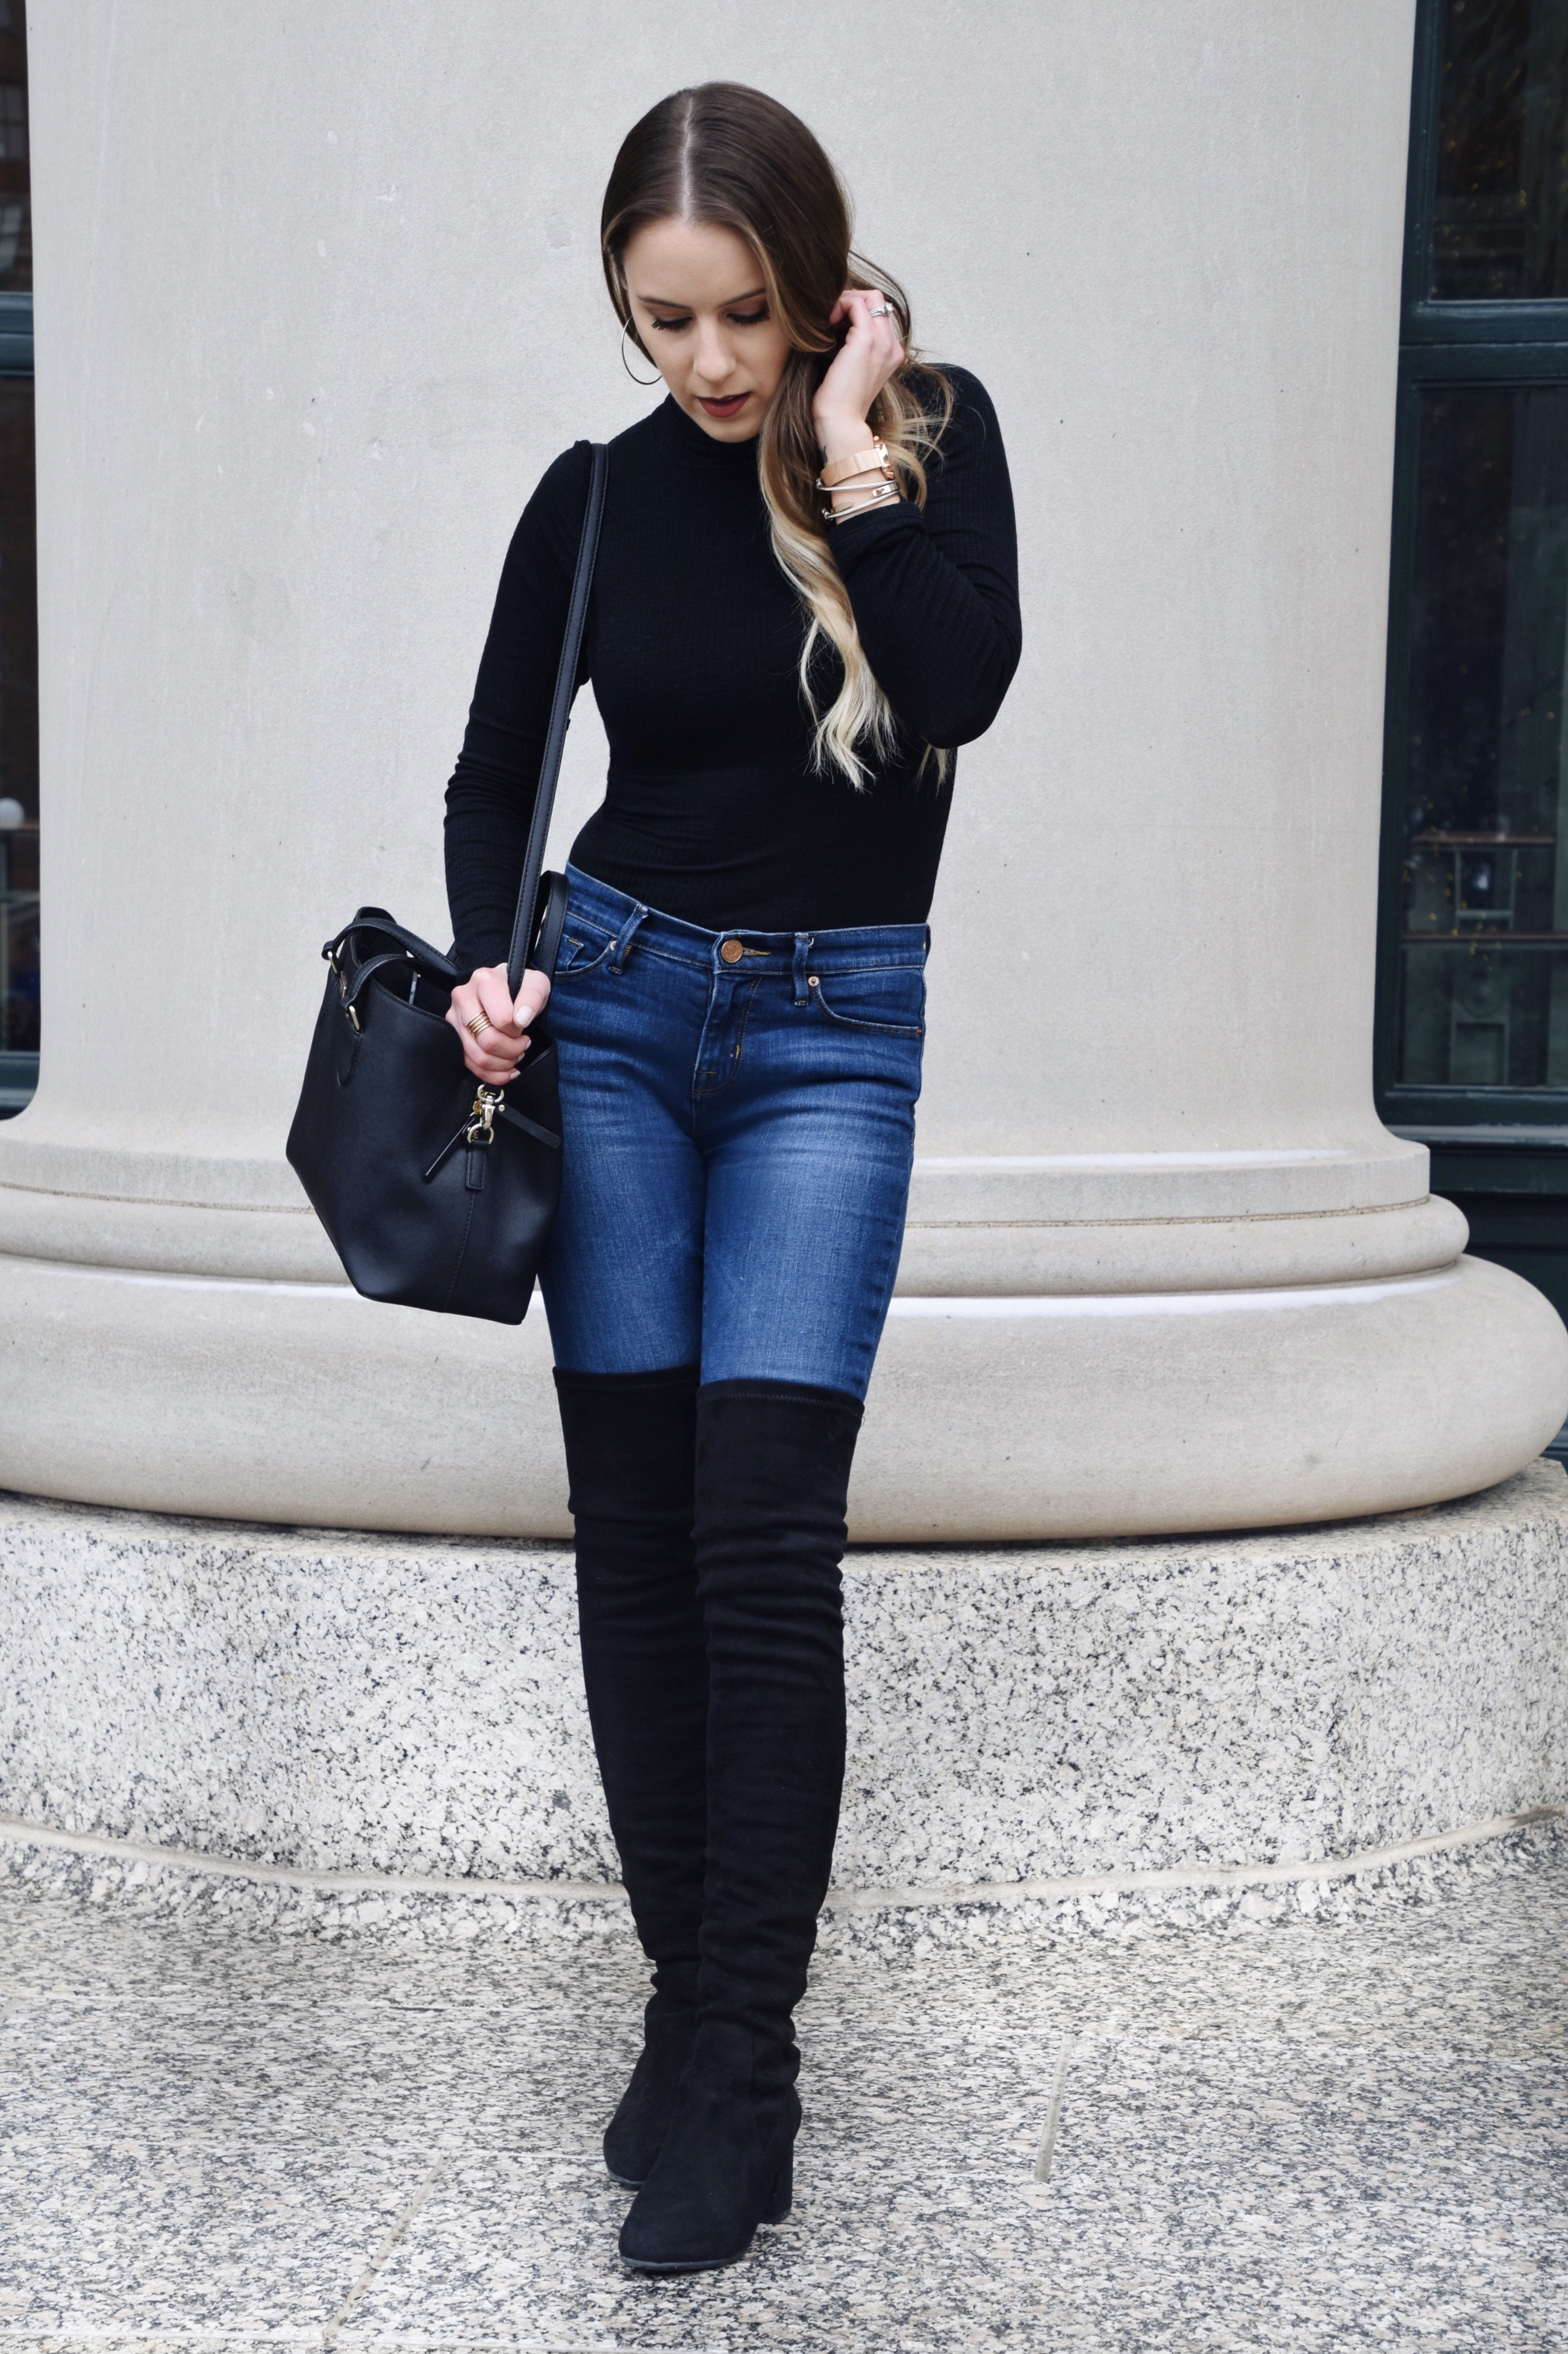 fancy instagram fashion outfits for women